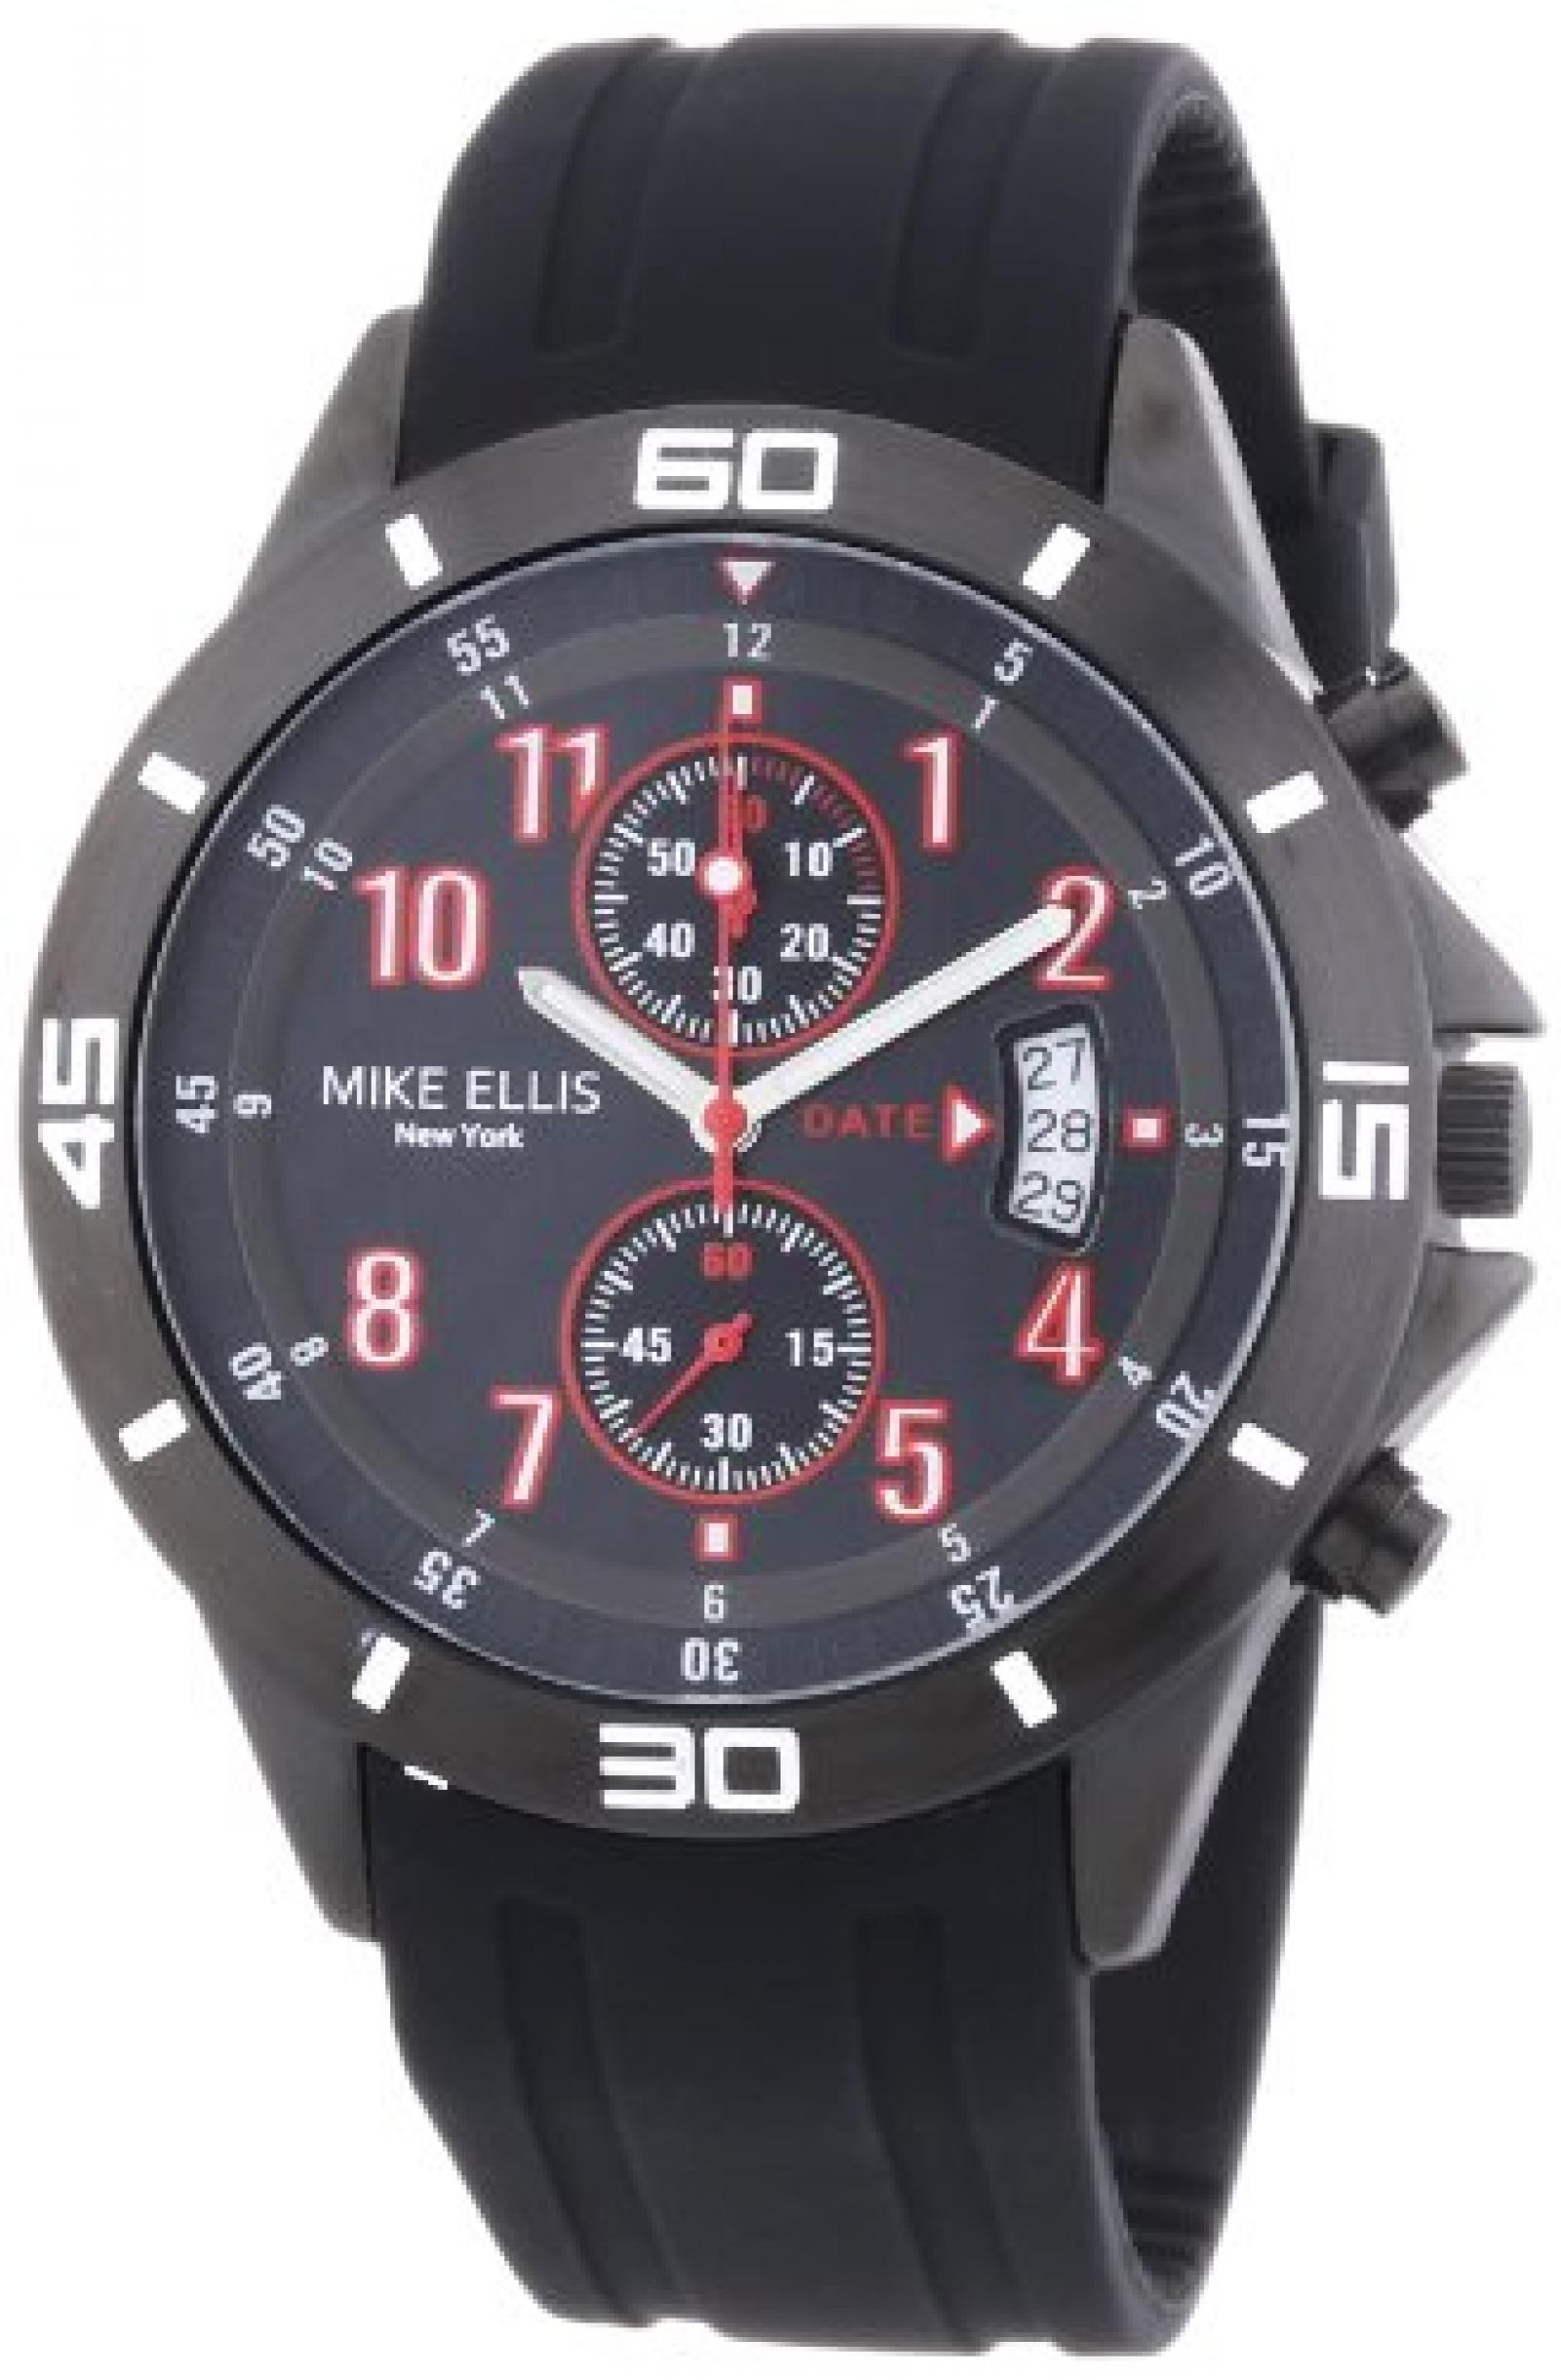 Mike Ellis New York Herren-Armbanduhr XL Analog Quarz Silikon M3096/1